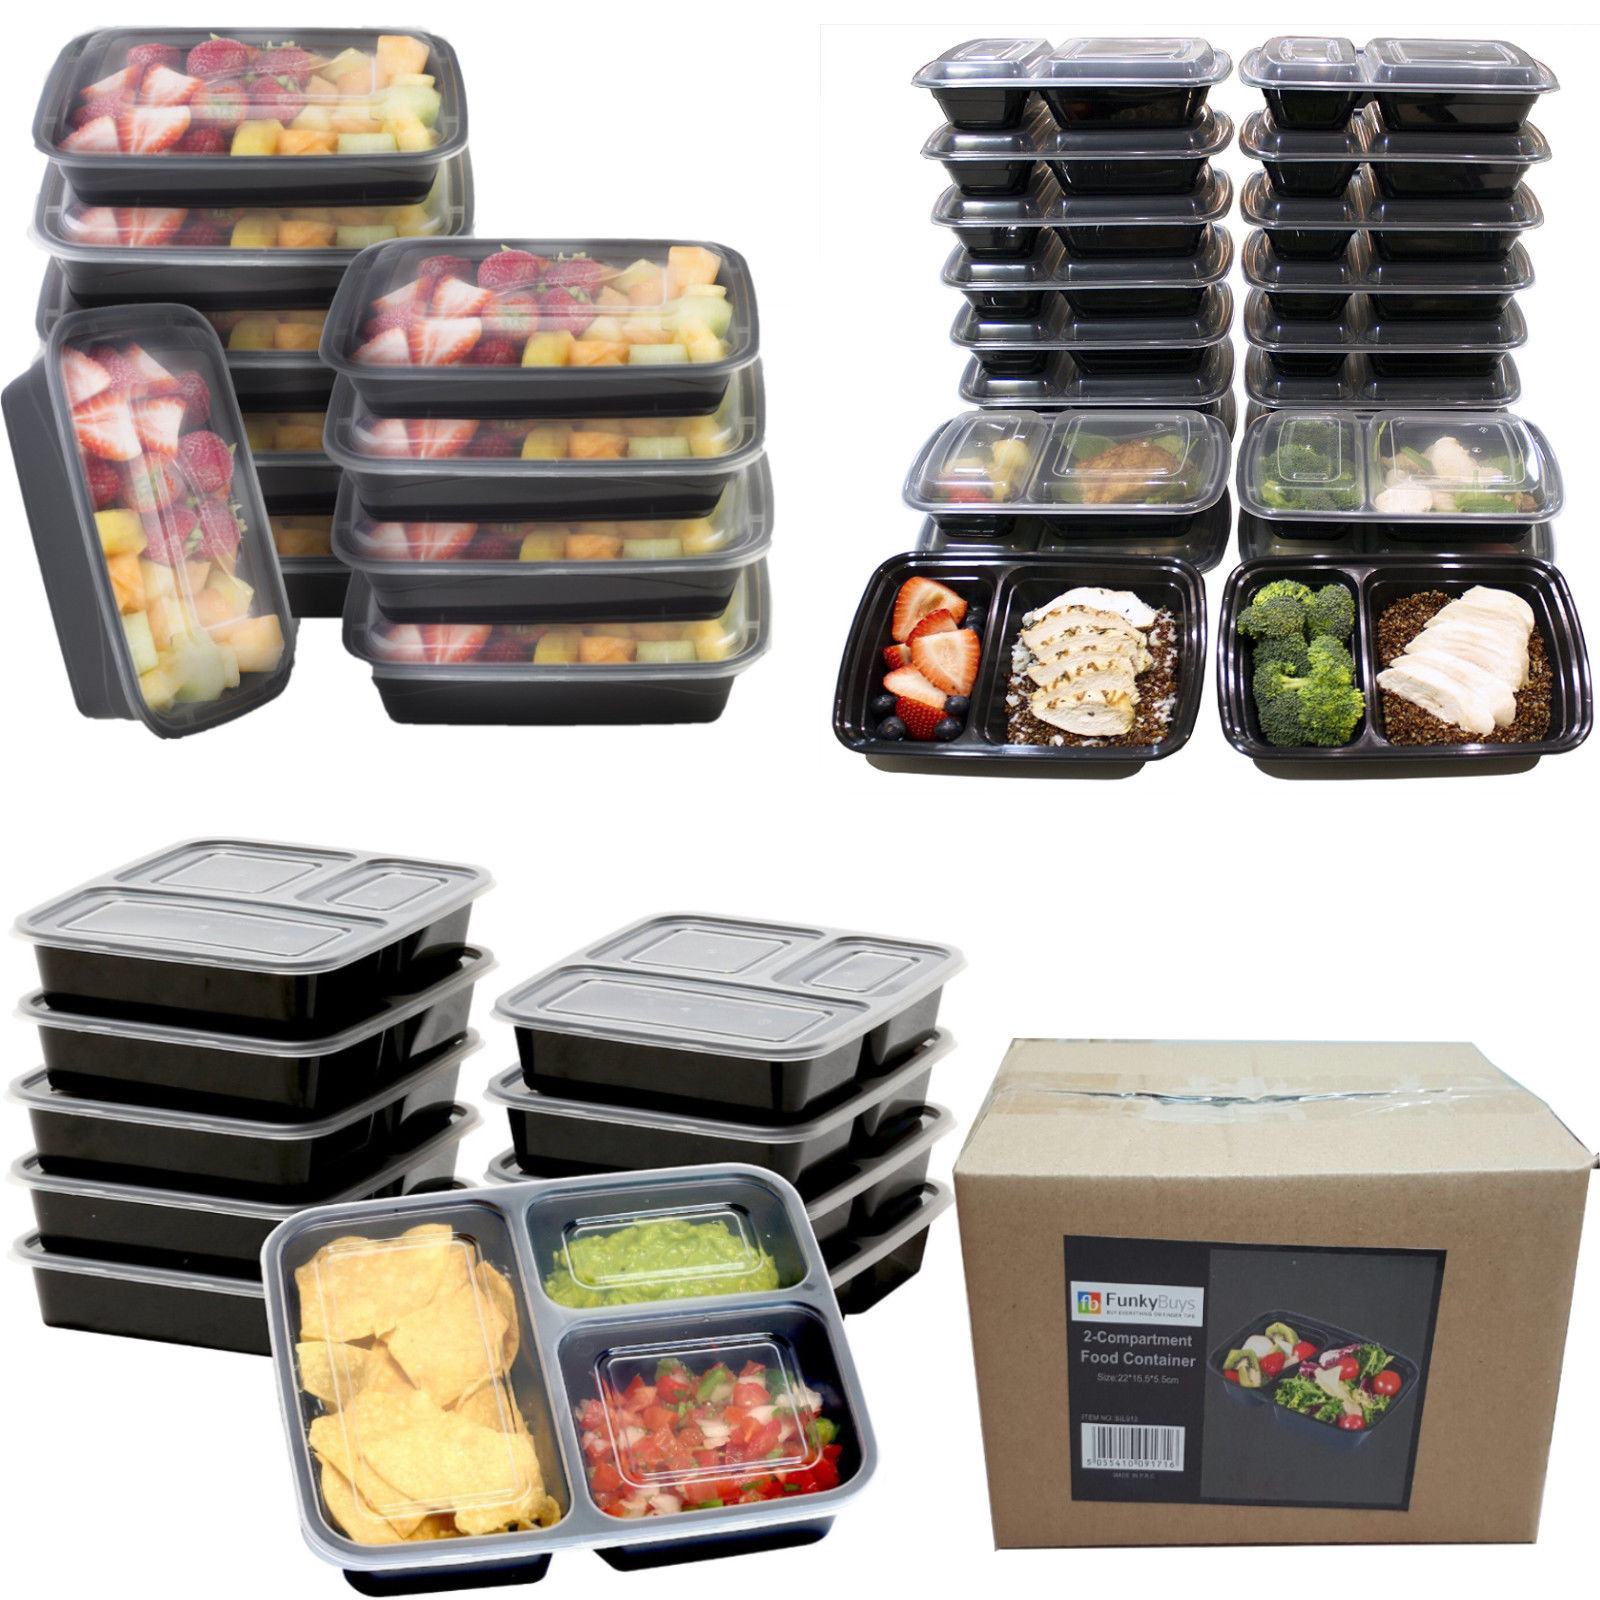 1 10x meal prep plastic food containers 3 compartment lids reusable microwavable ebay. Black Bedroom Furniture Sets. Home Design Ideas